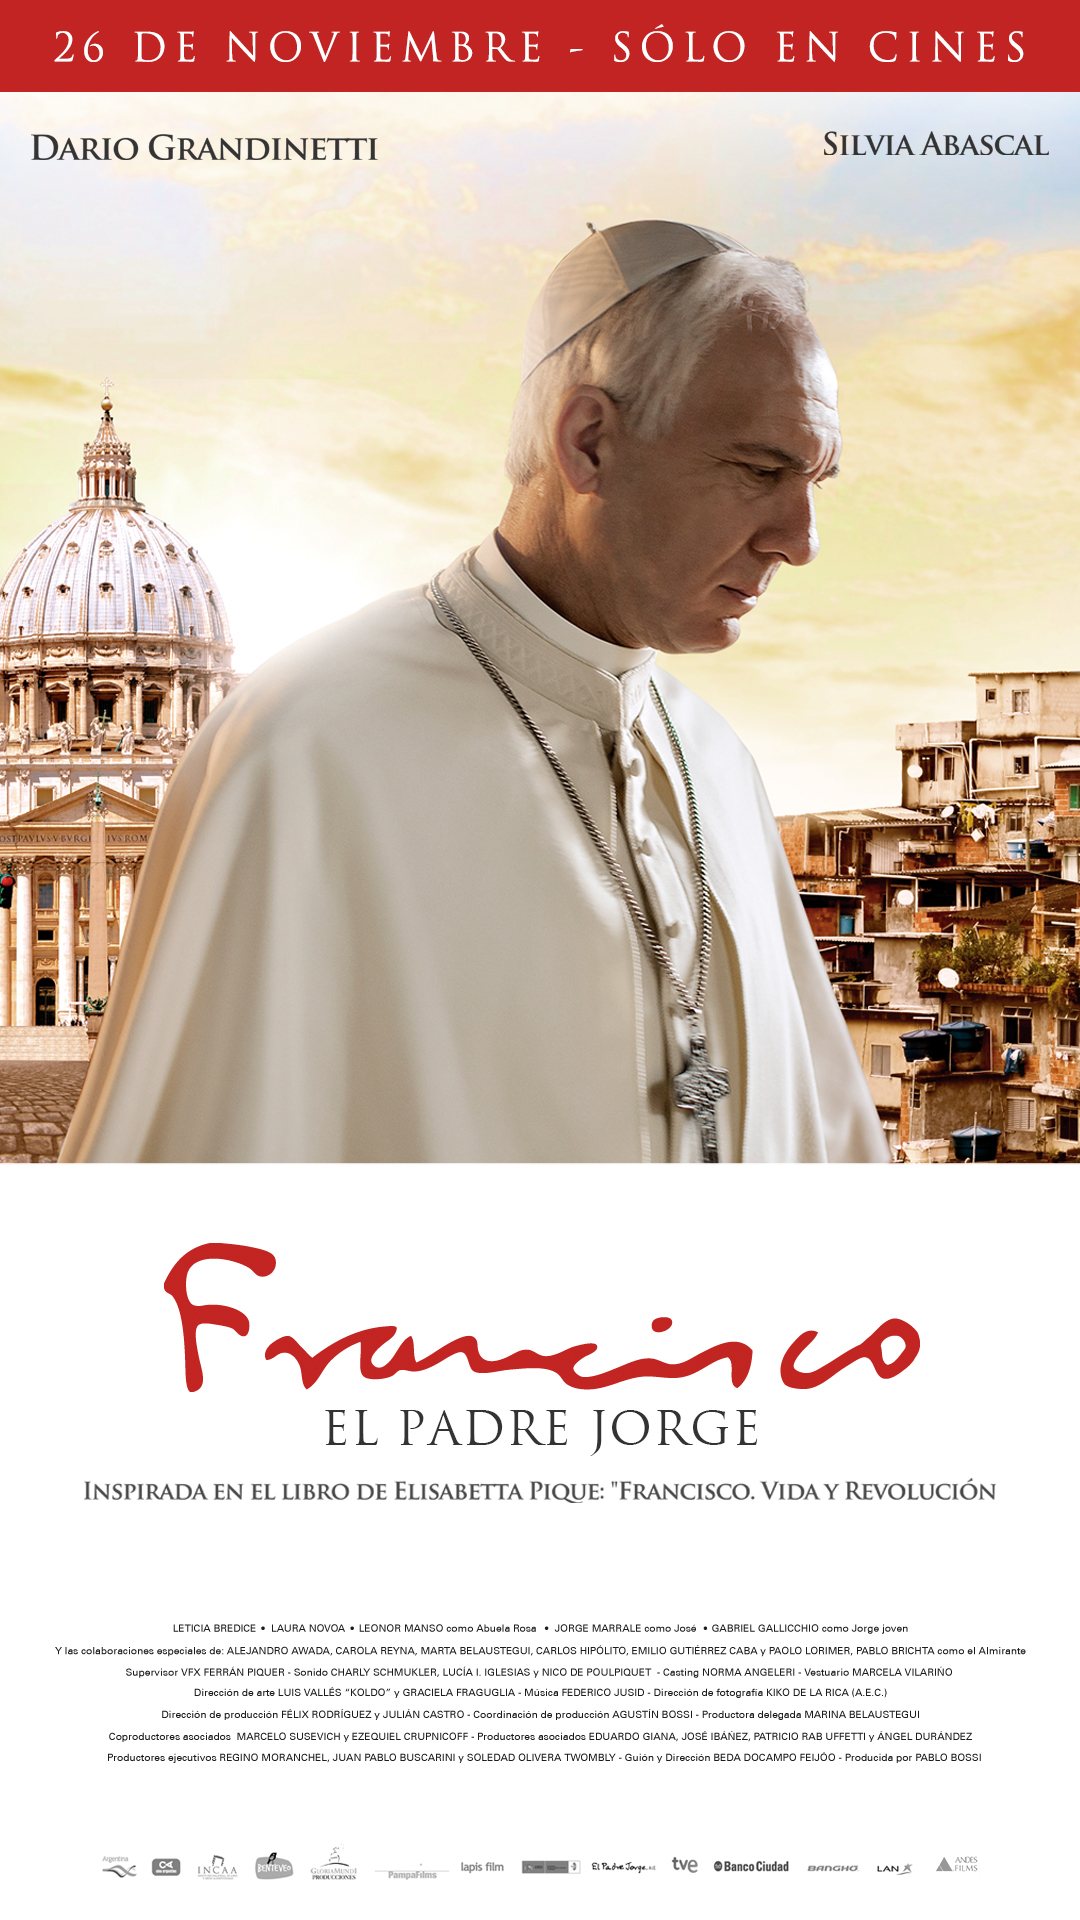 https://www.andesfilms.com.pe/francisco-312/